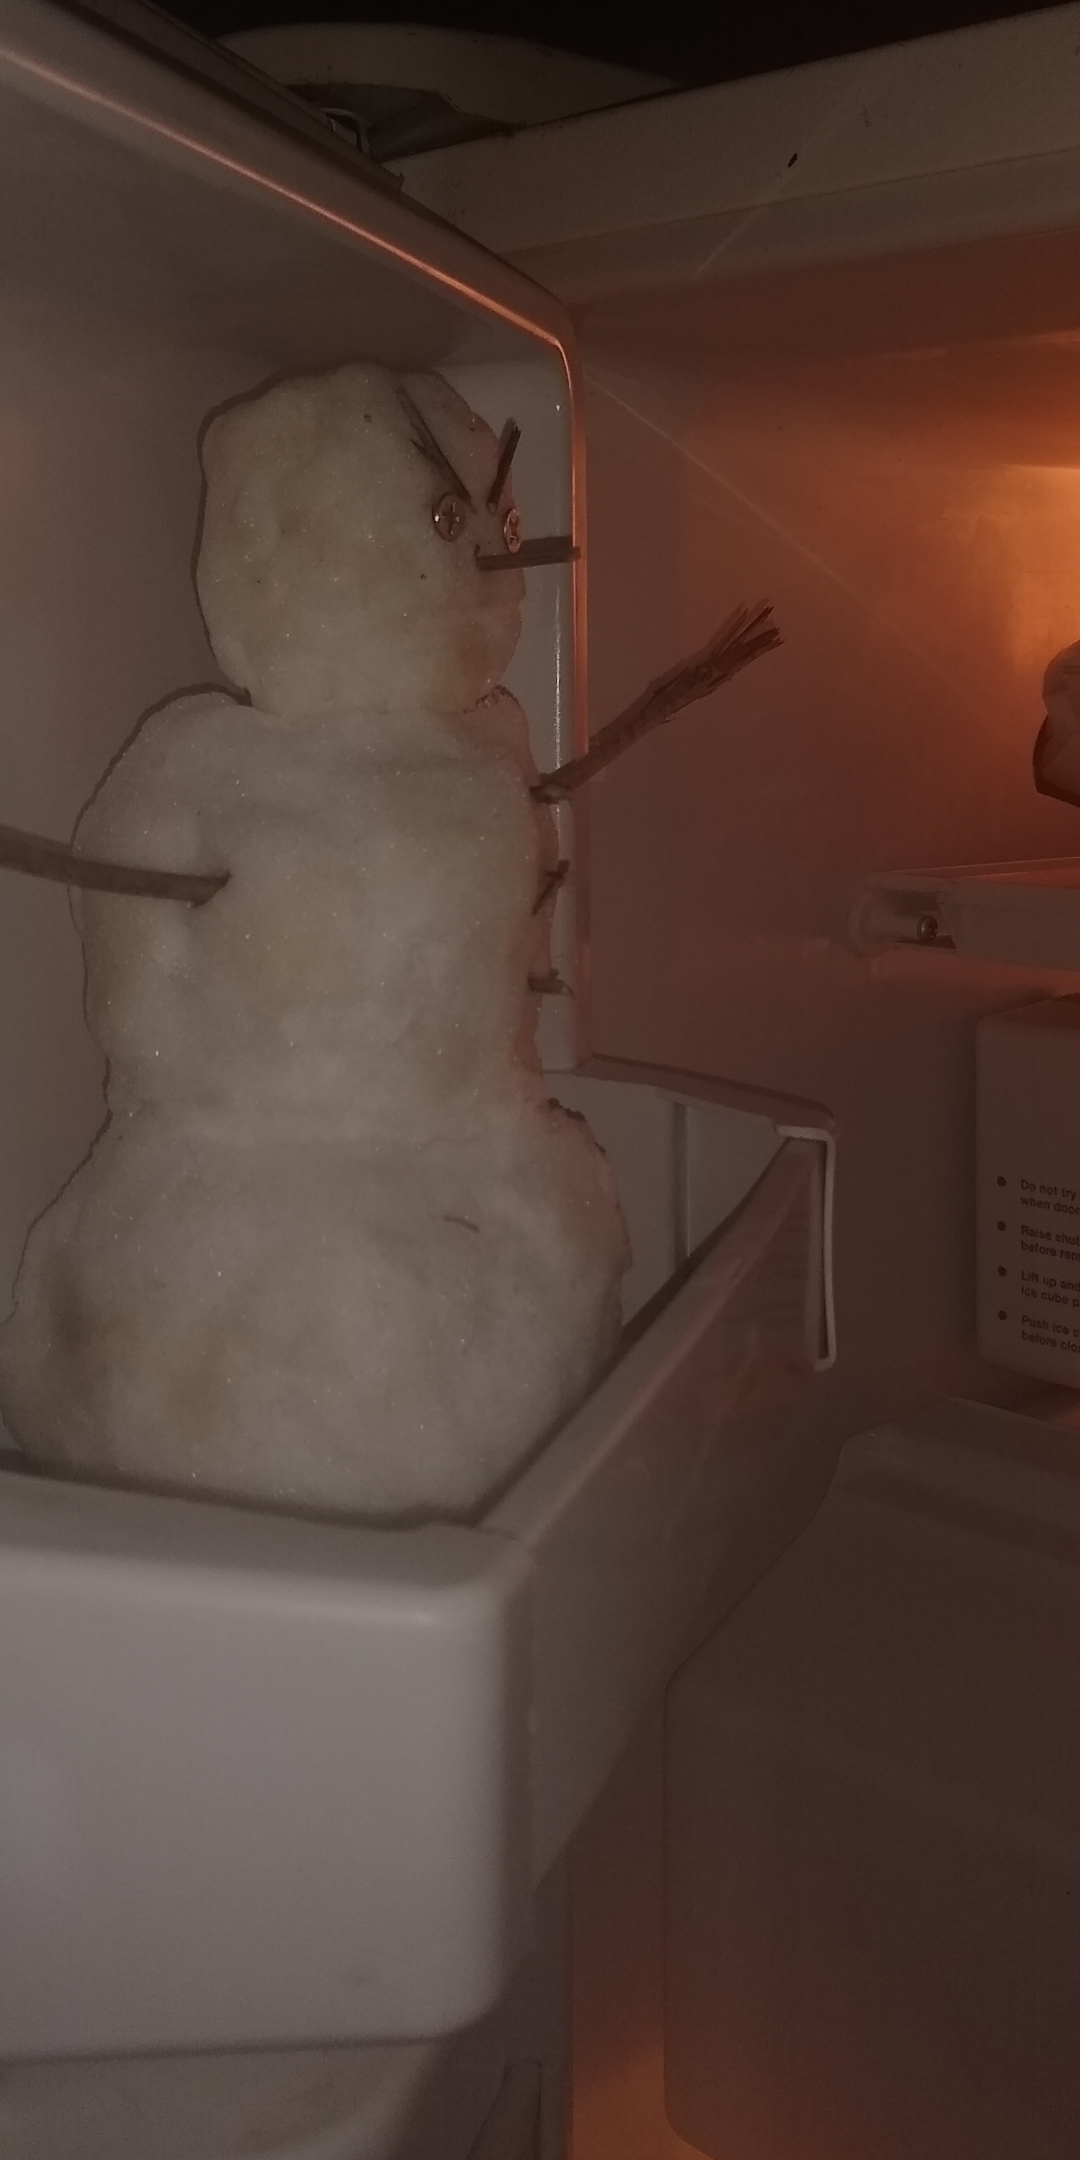 """I remember when I was younger my parents would say """"DON'T PUT THAT NASTY SNOWBALL IN MY FREEZER! YOU CAN DO THAT WHEN YOU GET YOUR OWN!"""" Guess who has a nasty snowman in their freezer"""